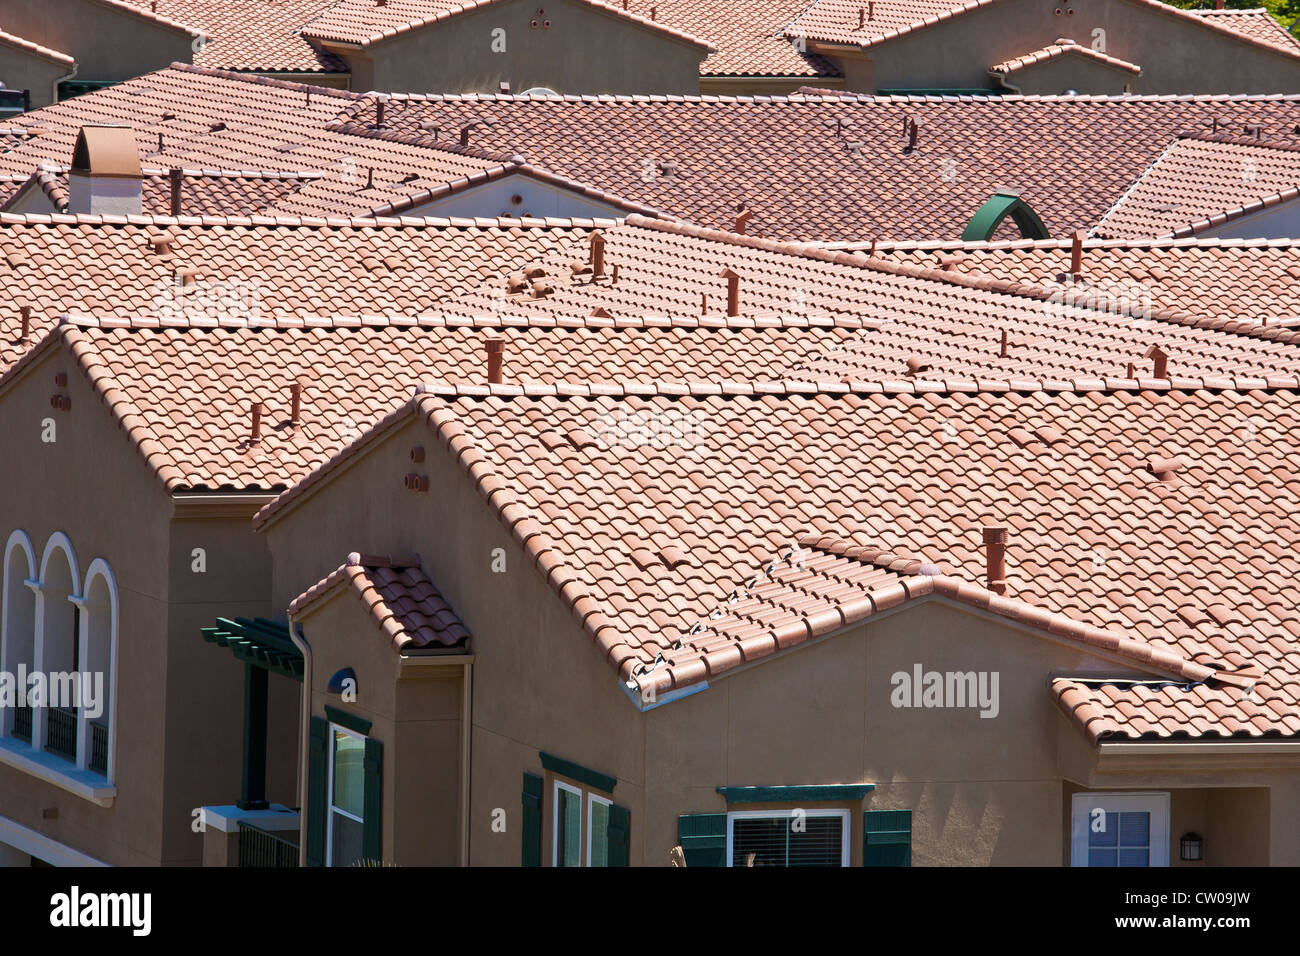 Stock Photo   Cement Tile Roofs In Suburban Apartment Development In  Southern California